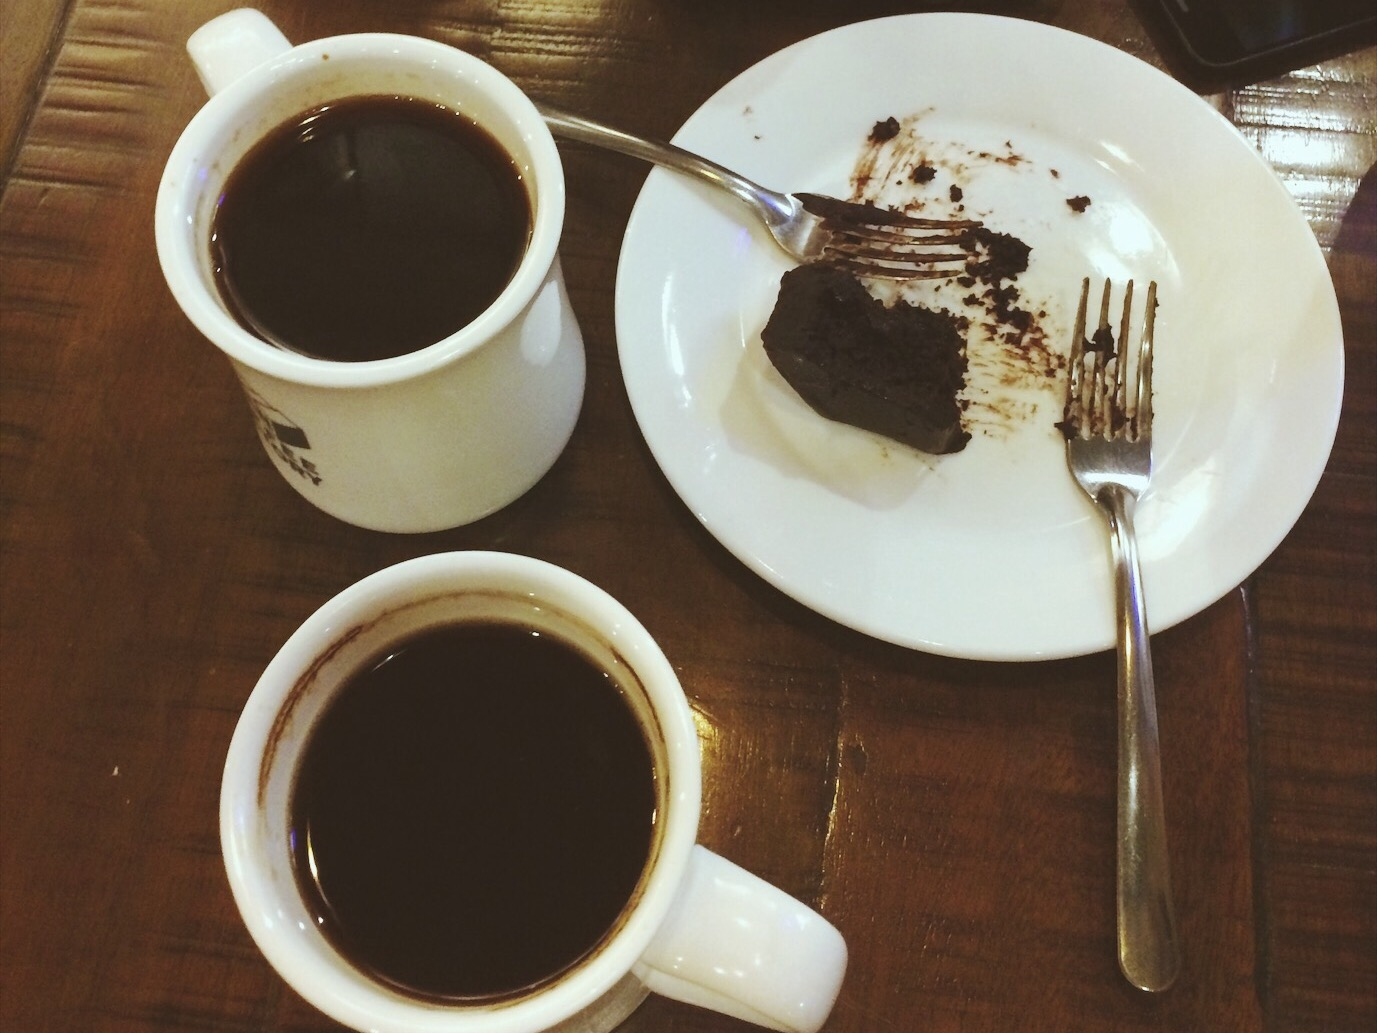 Americano coffee with chocolate cake